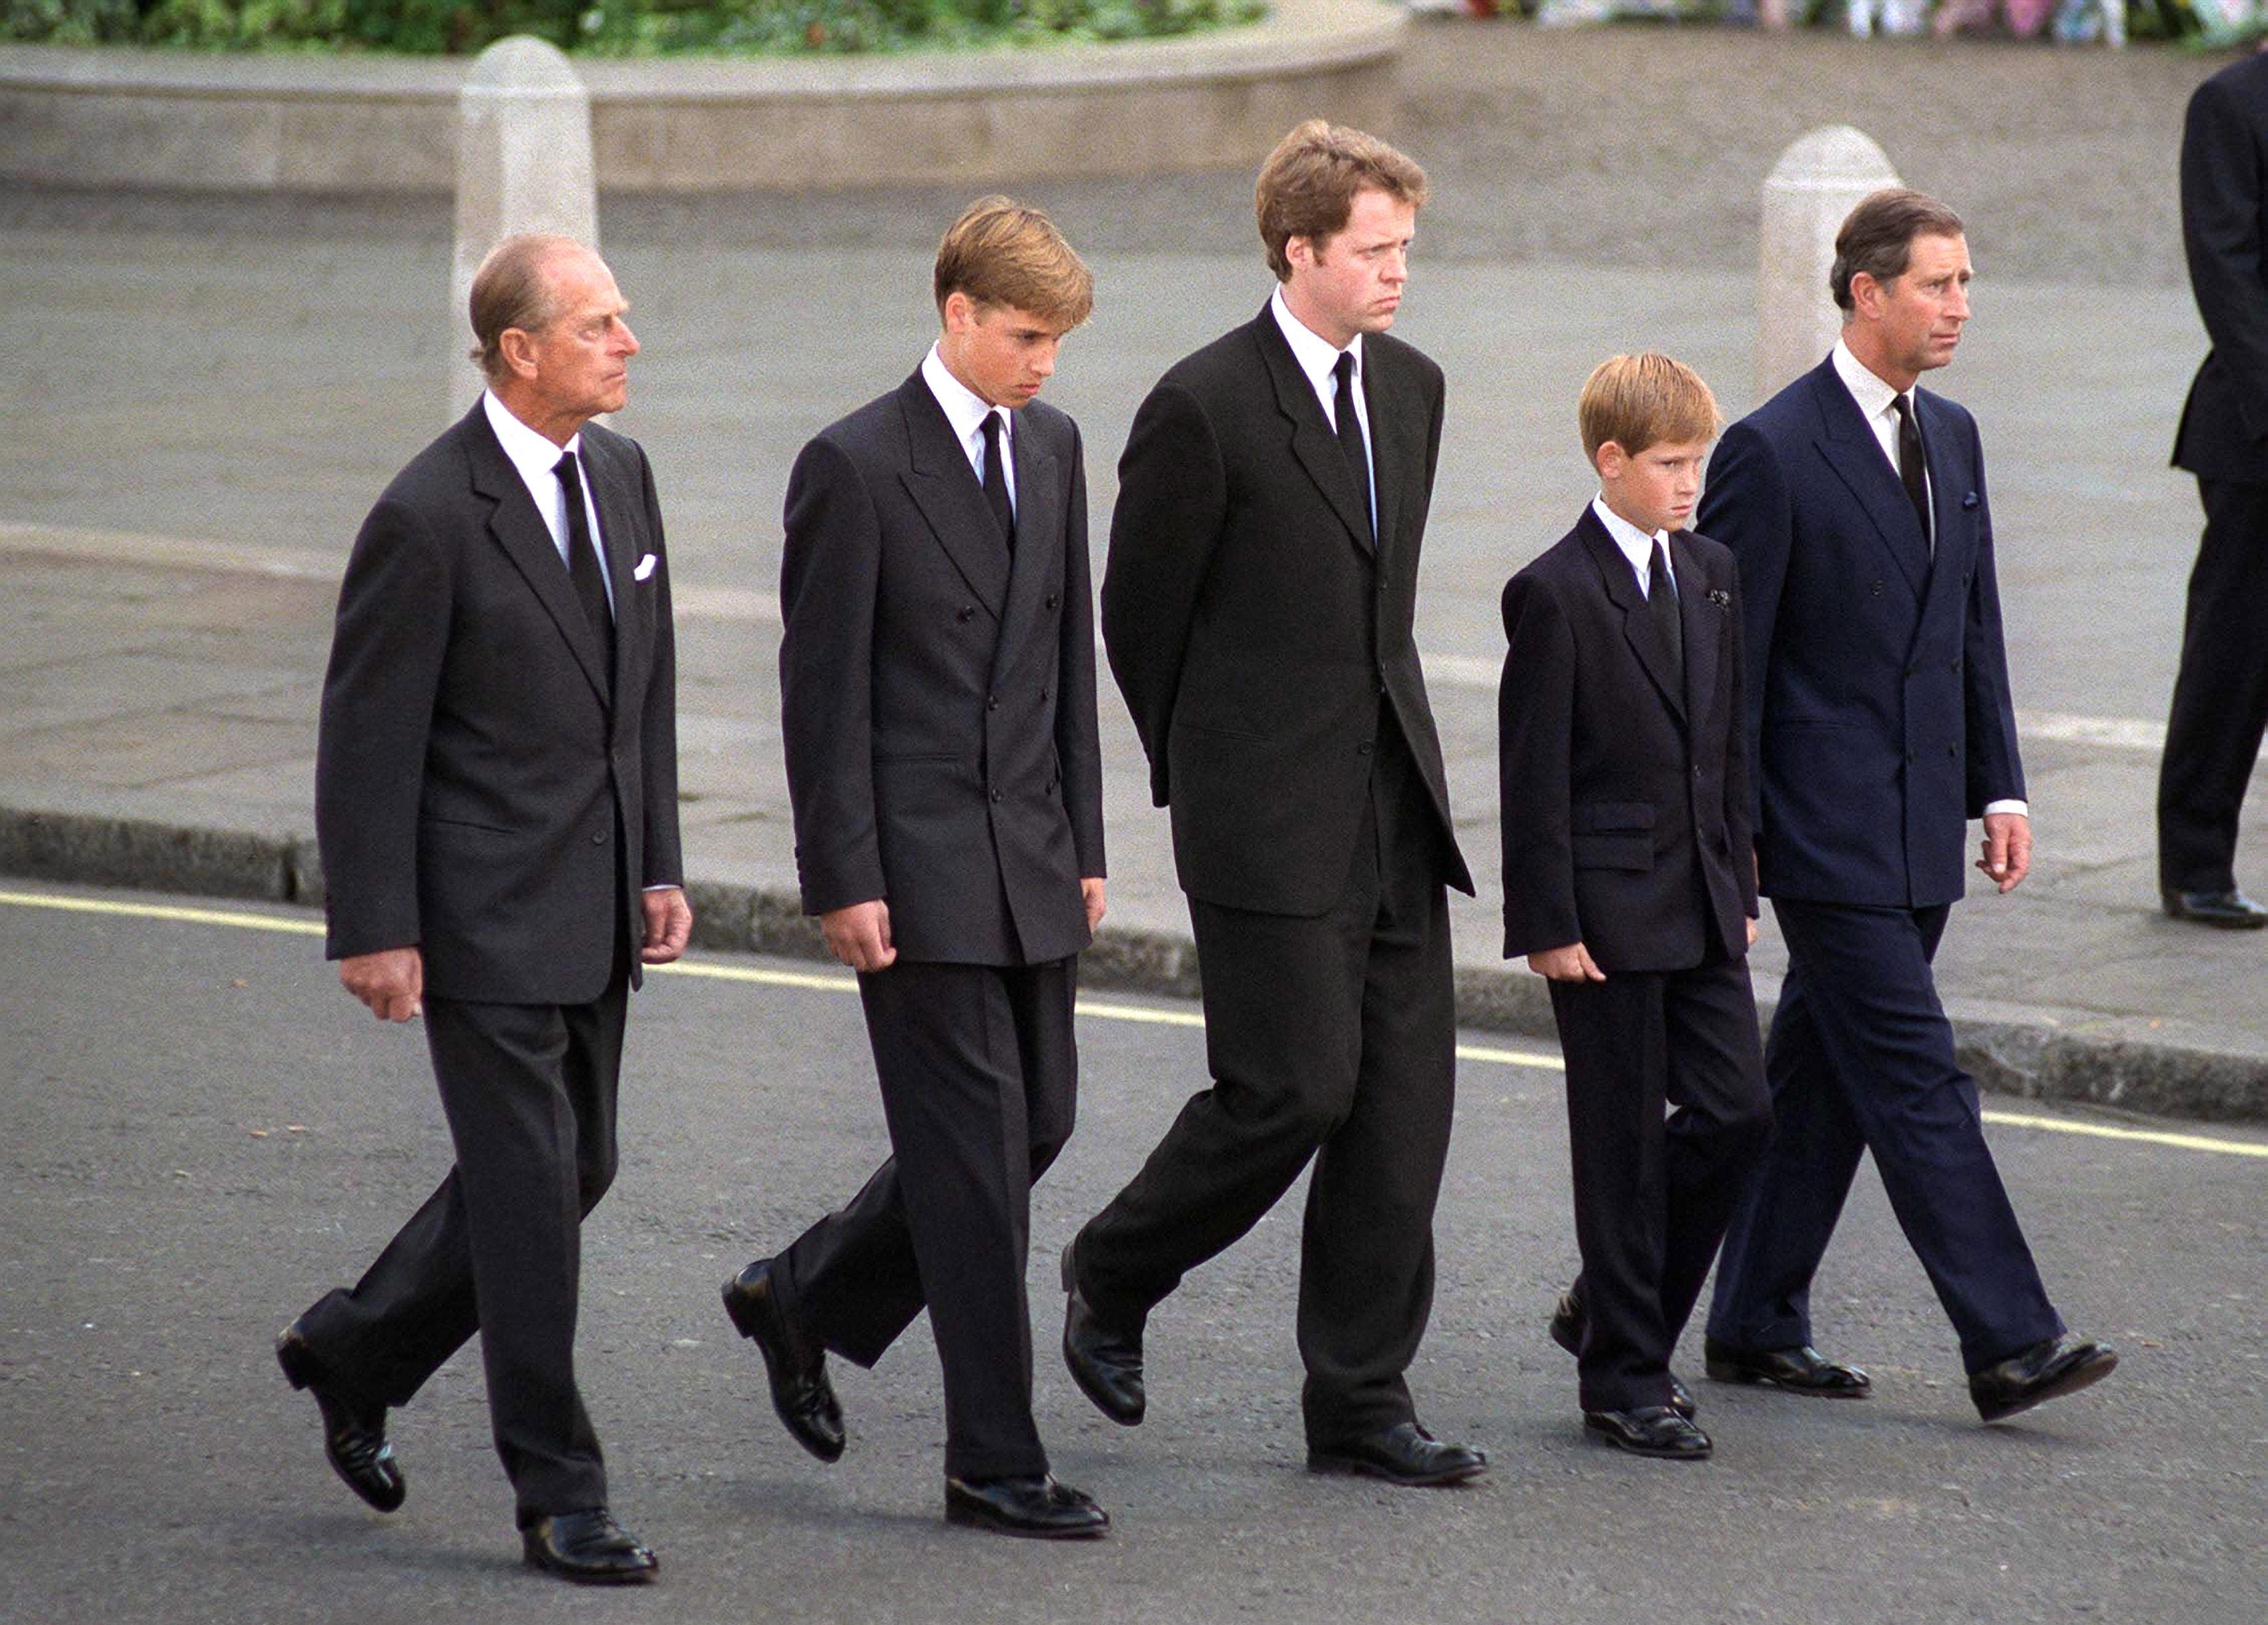 The Duke Of Edinburgh, Prince William, Earl Spencer, Prince Harry And The Prince Of Wales Following The Coffin Of Diana, Princess Of Wales  (Photo by Tim Graham Photo Library via Getty Images)